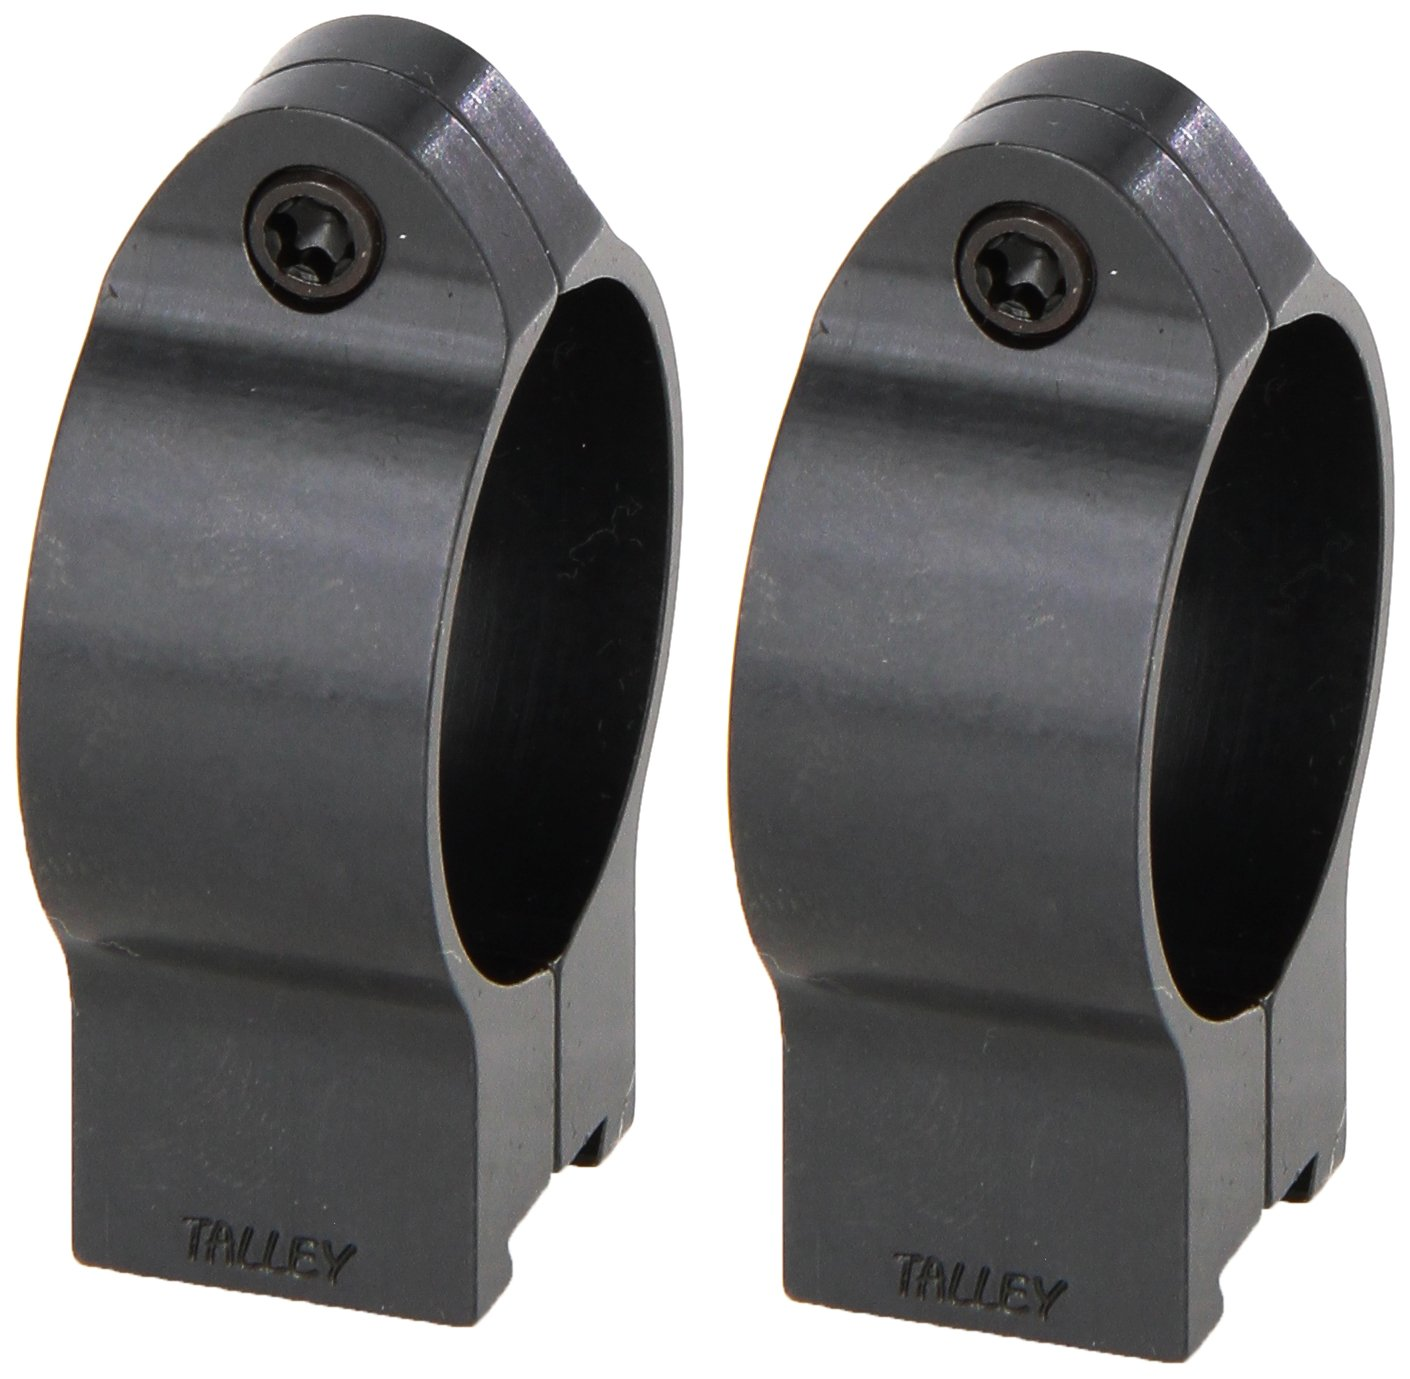 Talley Rimfire Rings for CZ Scope Mount, Blue, 1-Inch/Low by Talley